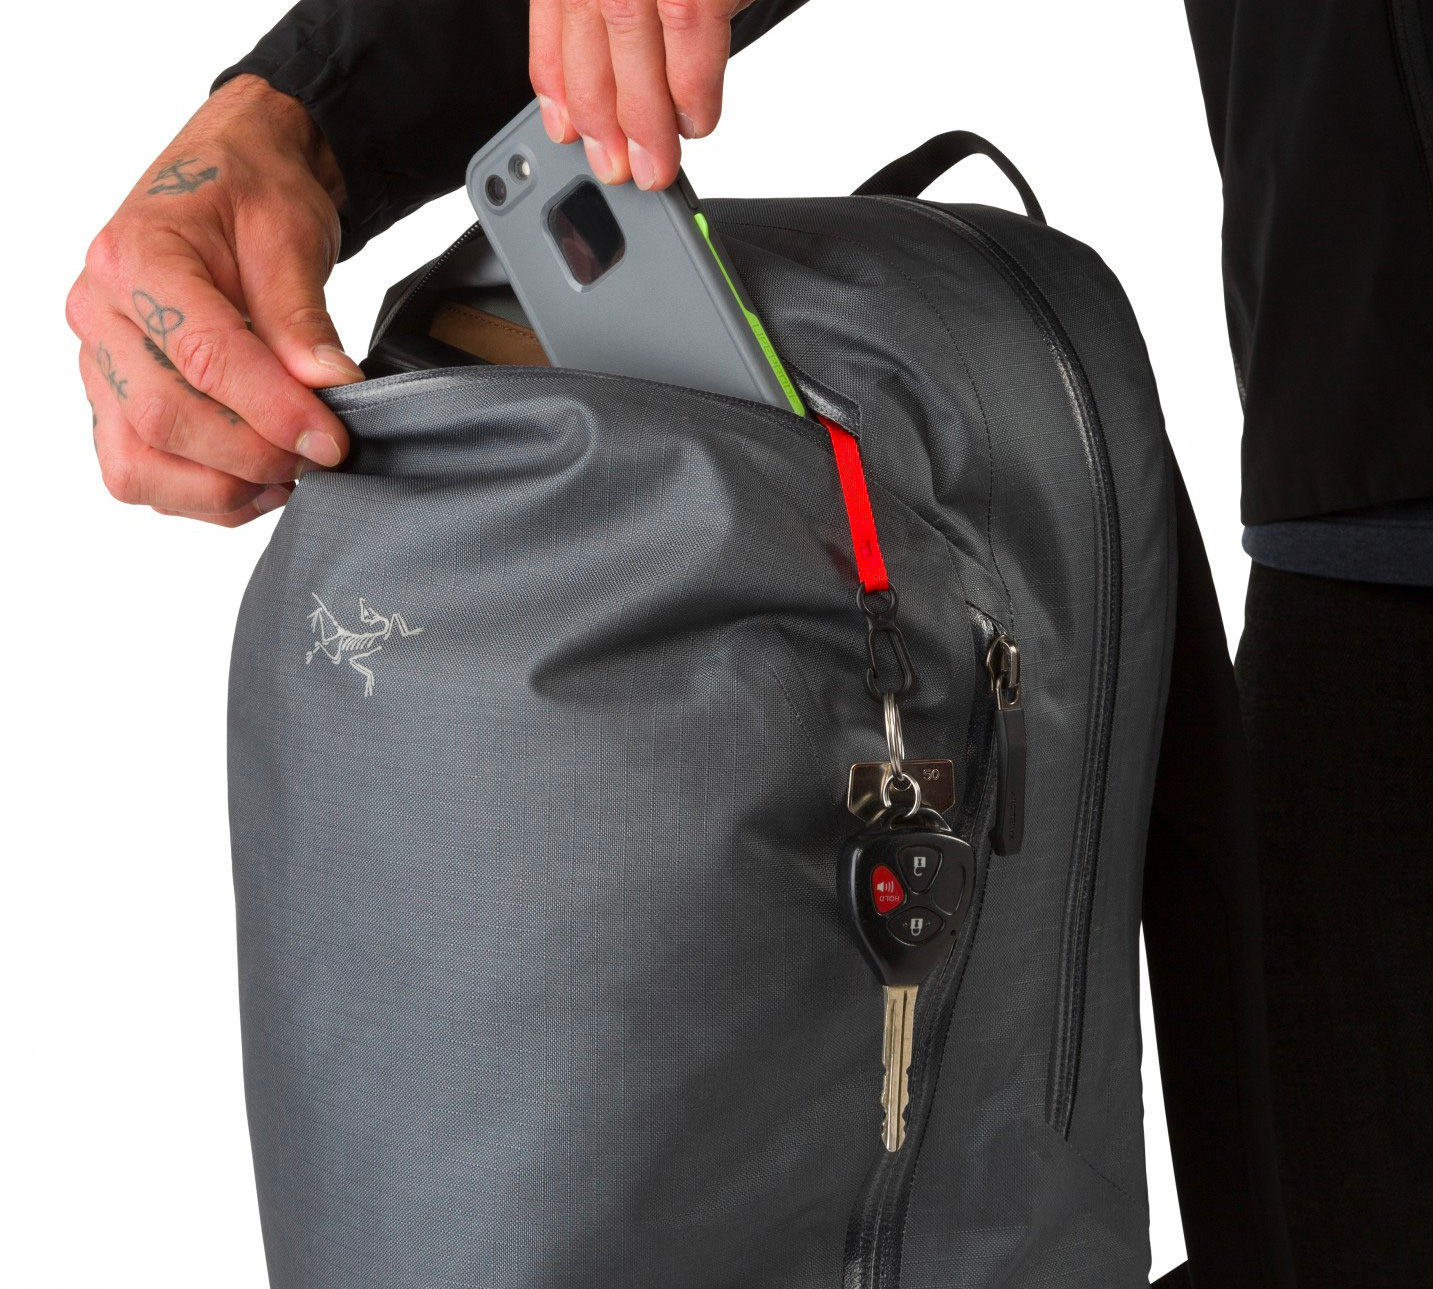 The Arc'Teryx Granville 16 Pack Keeps Your Gear High & Dry at werd.com